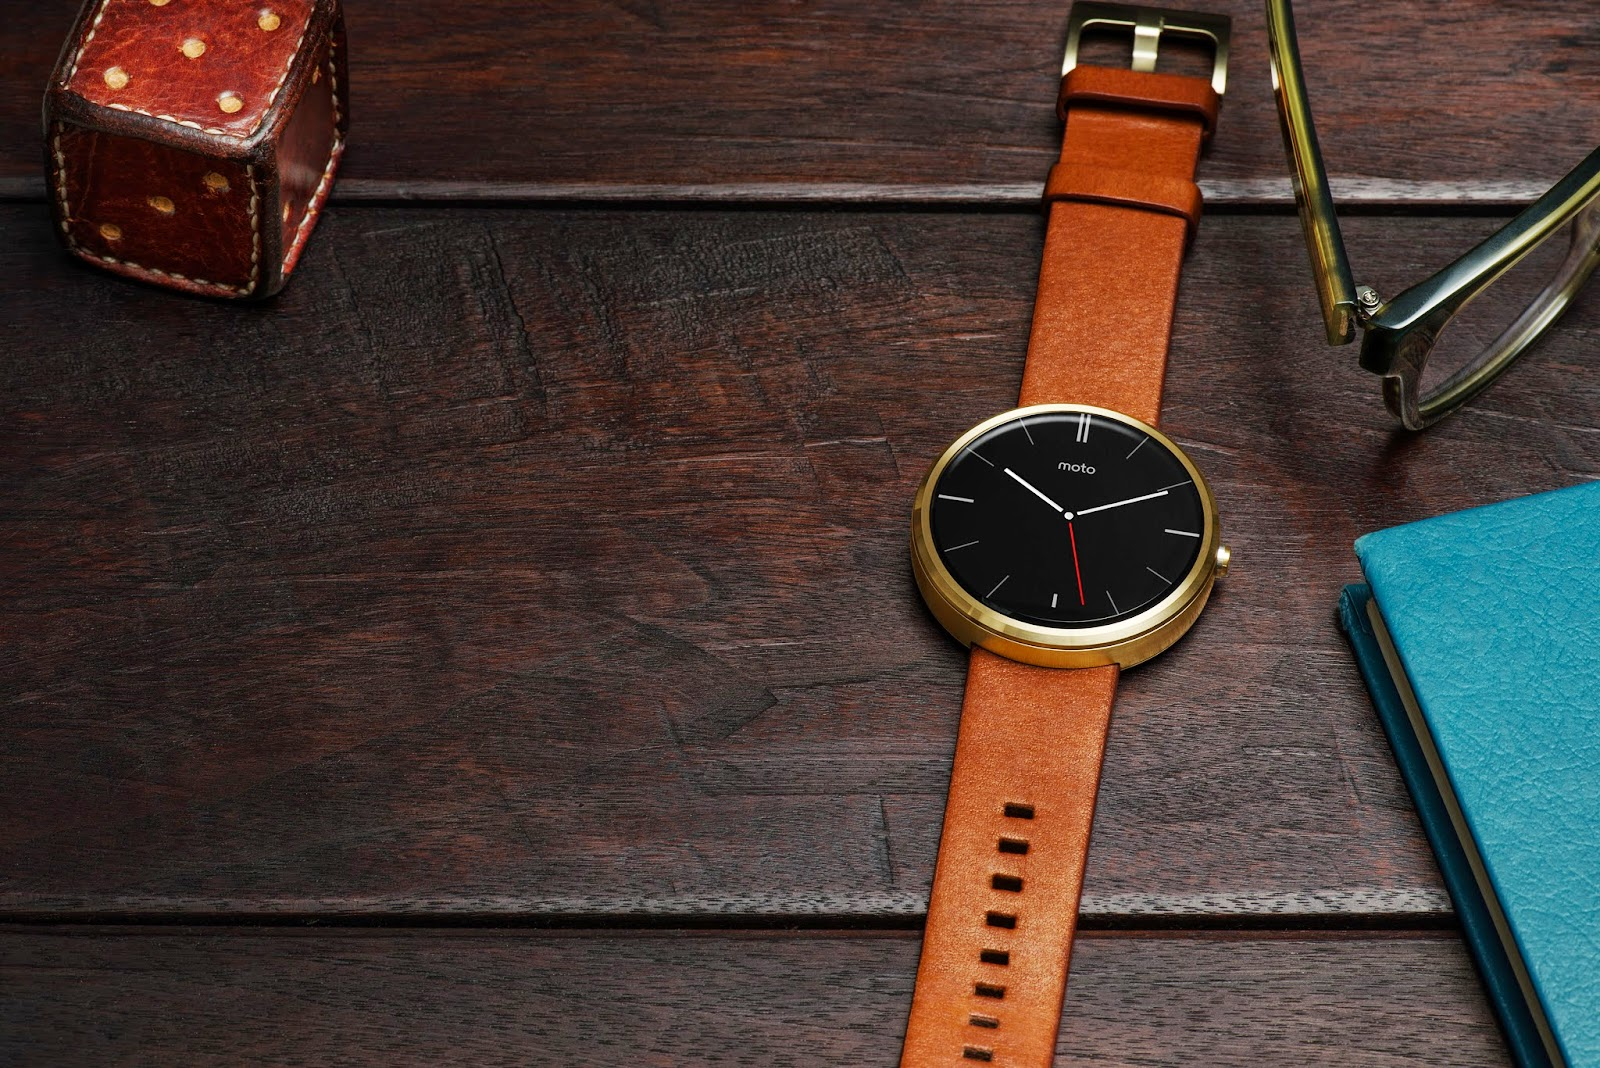 Moto 360 gets Moto Maker